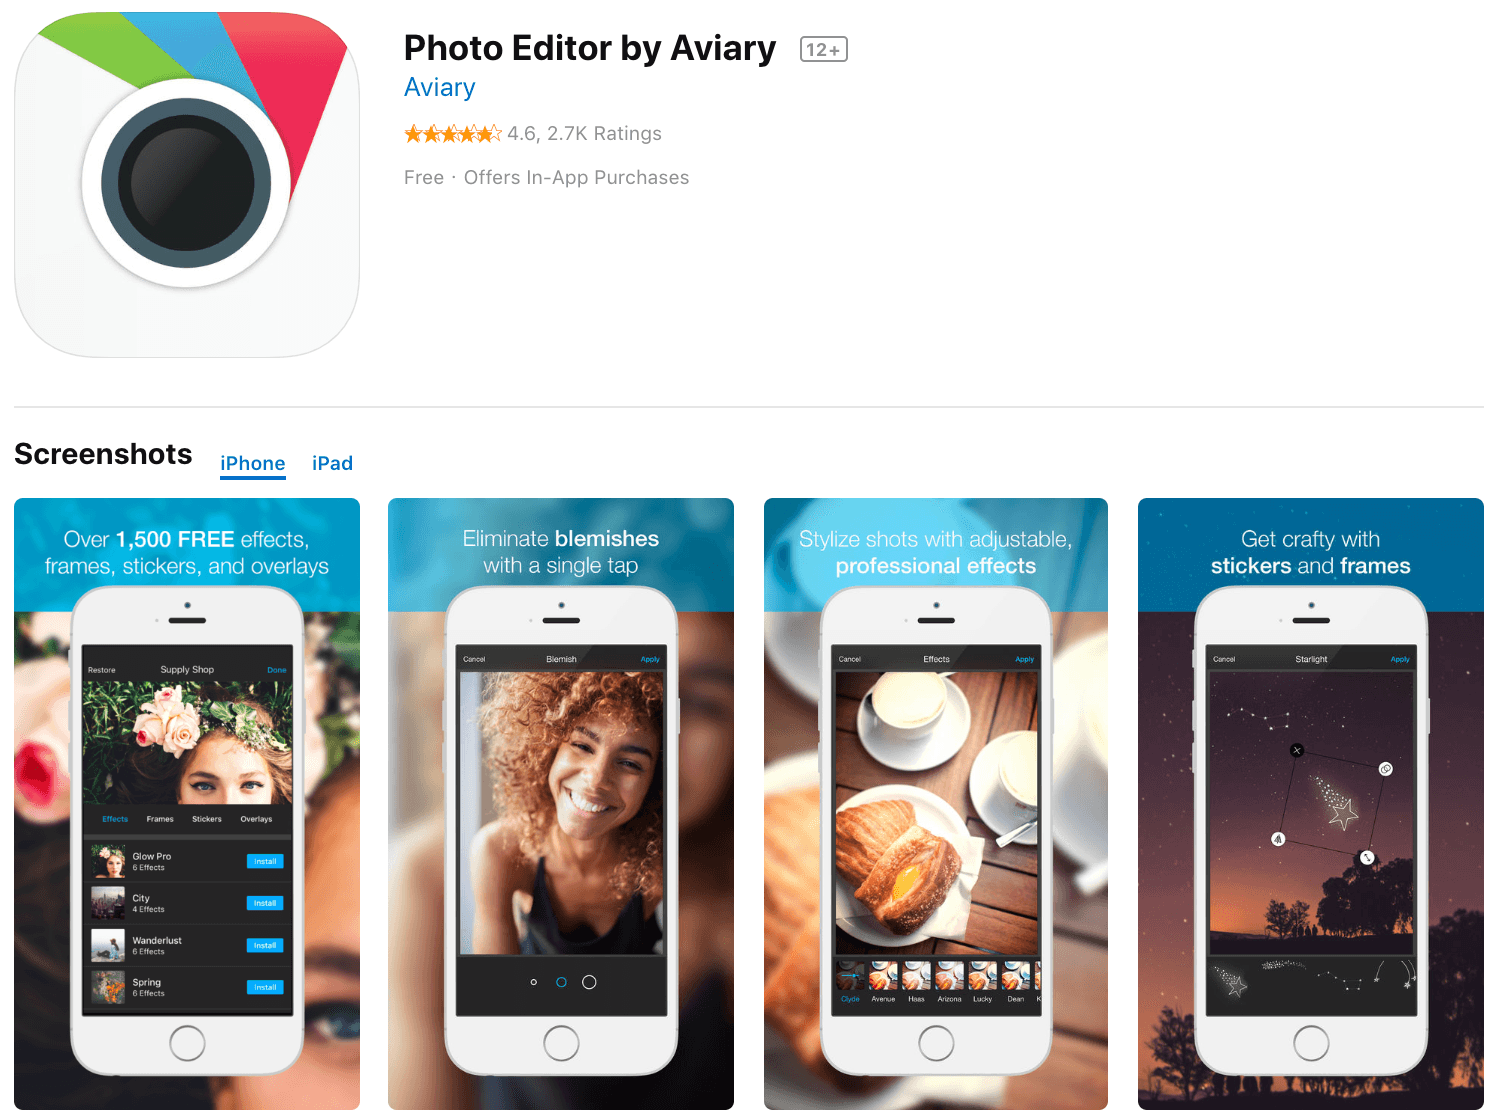 Marketing Apps Photo Editor by Aviary